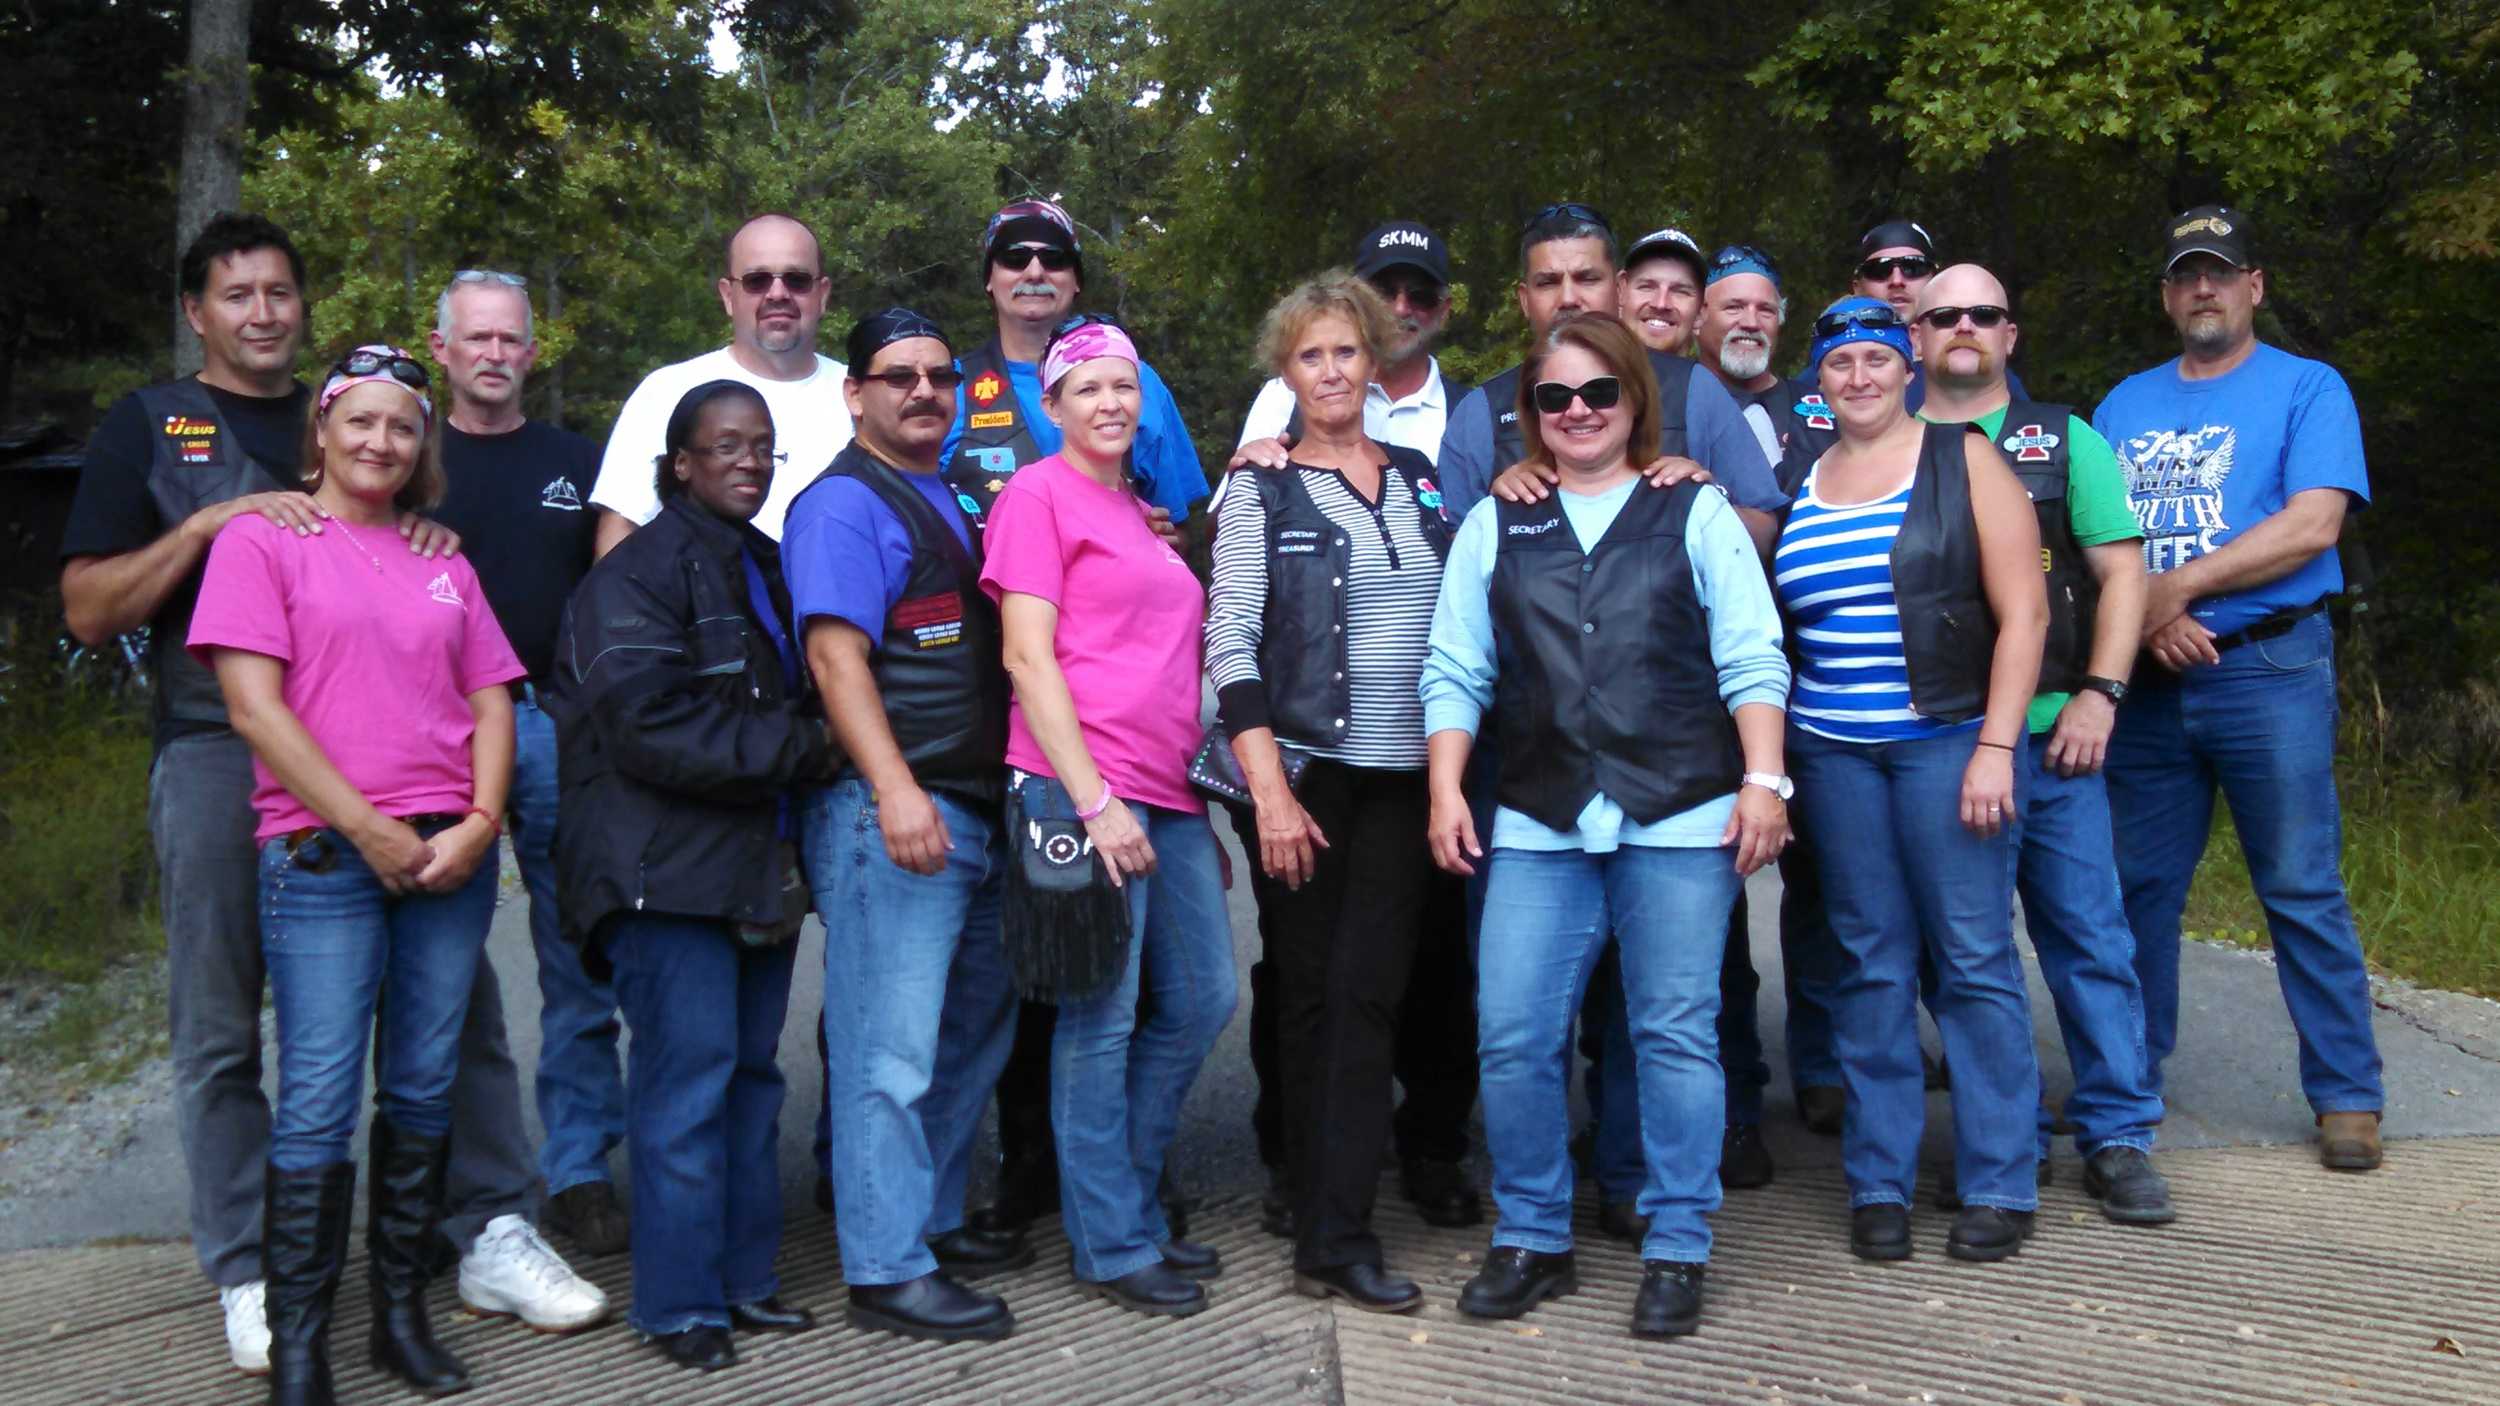 Members of Oklahoma, Topeka, Wichita and Ottawa Chapters pose for a picture.